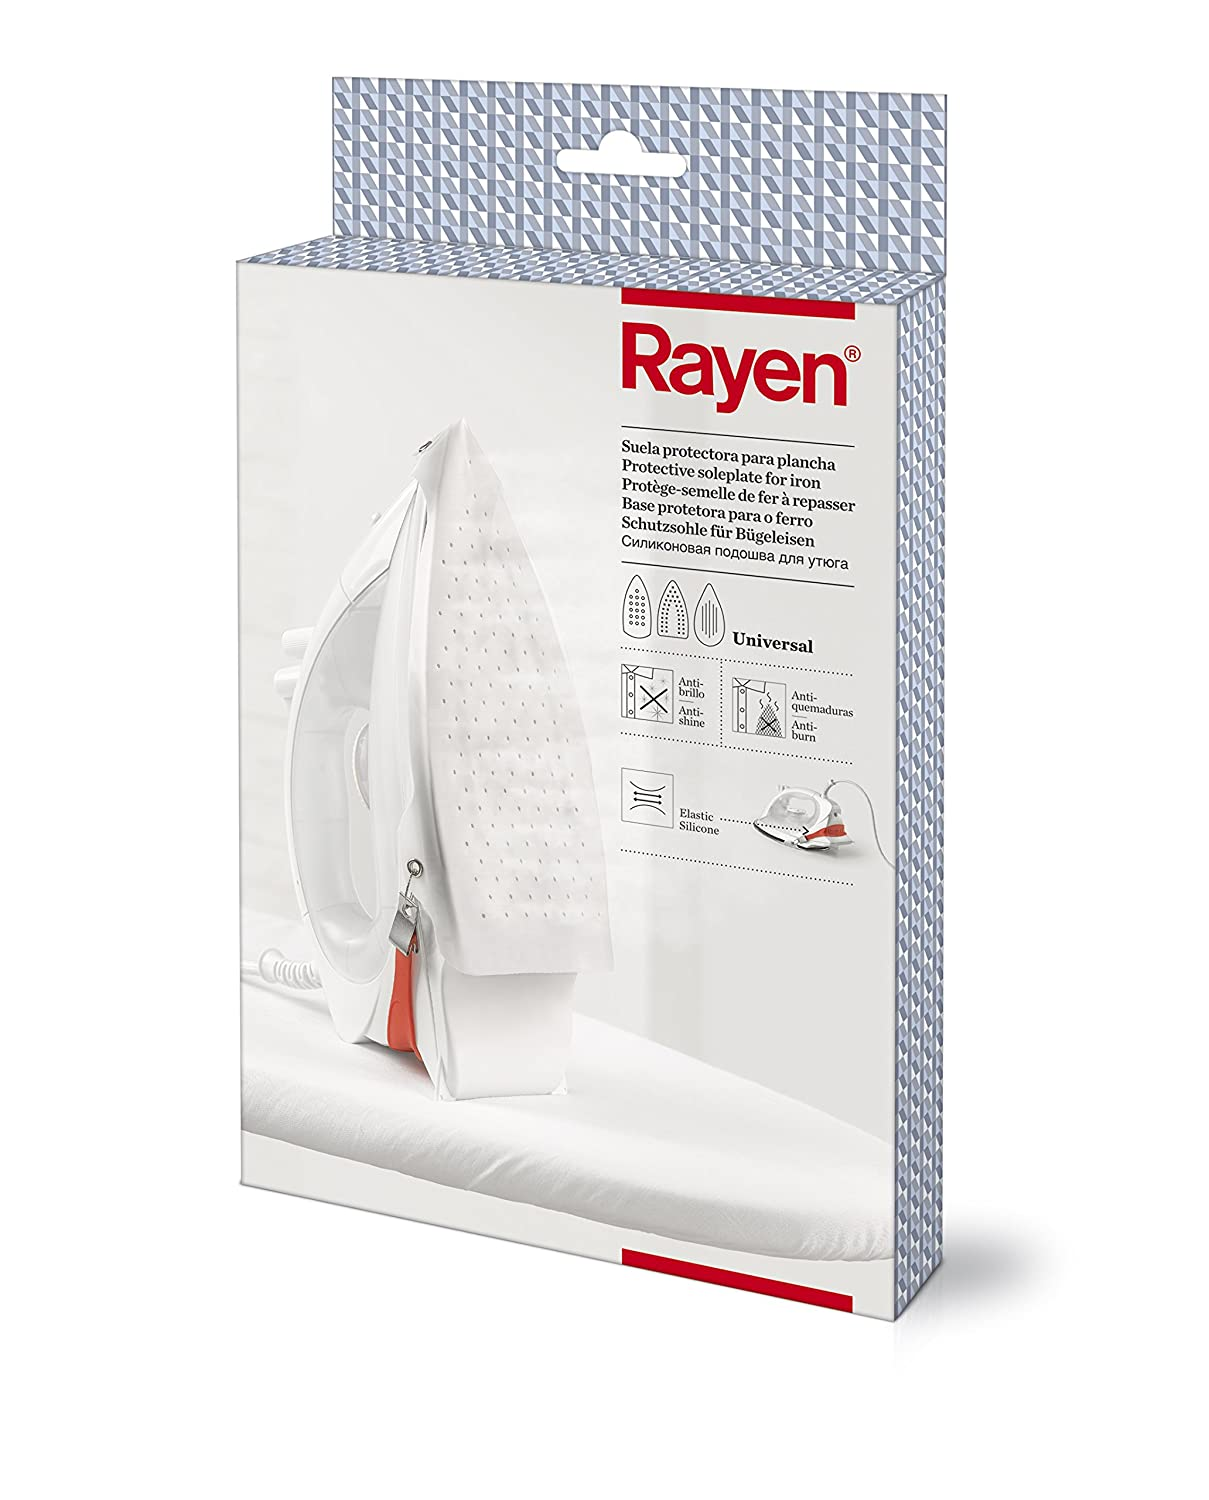 Rayen 6205.01 - Suela protectora para plancha, color blanco: Amazon.es: Belleza